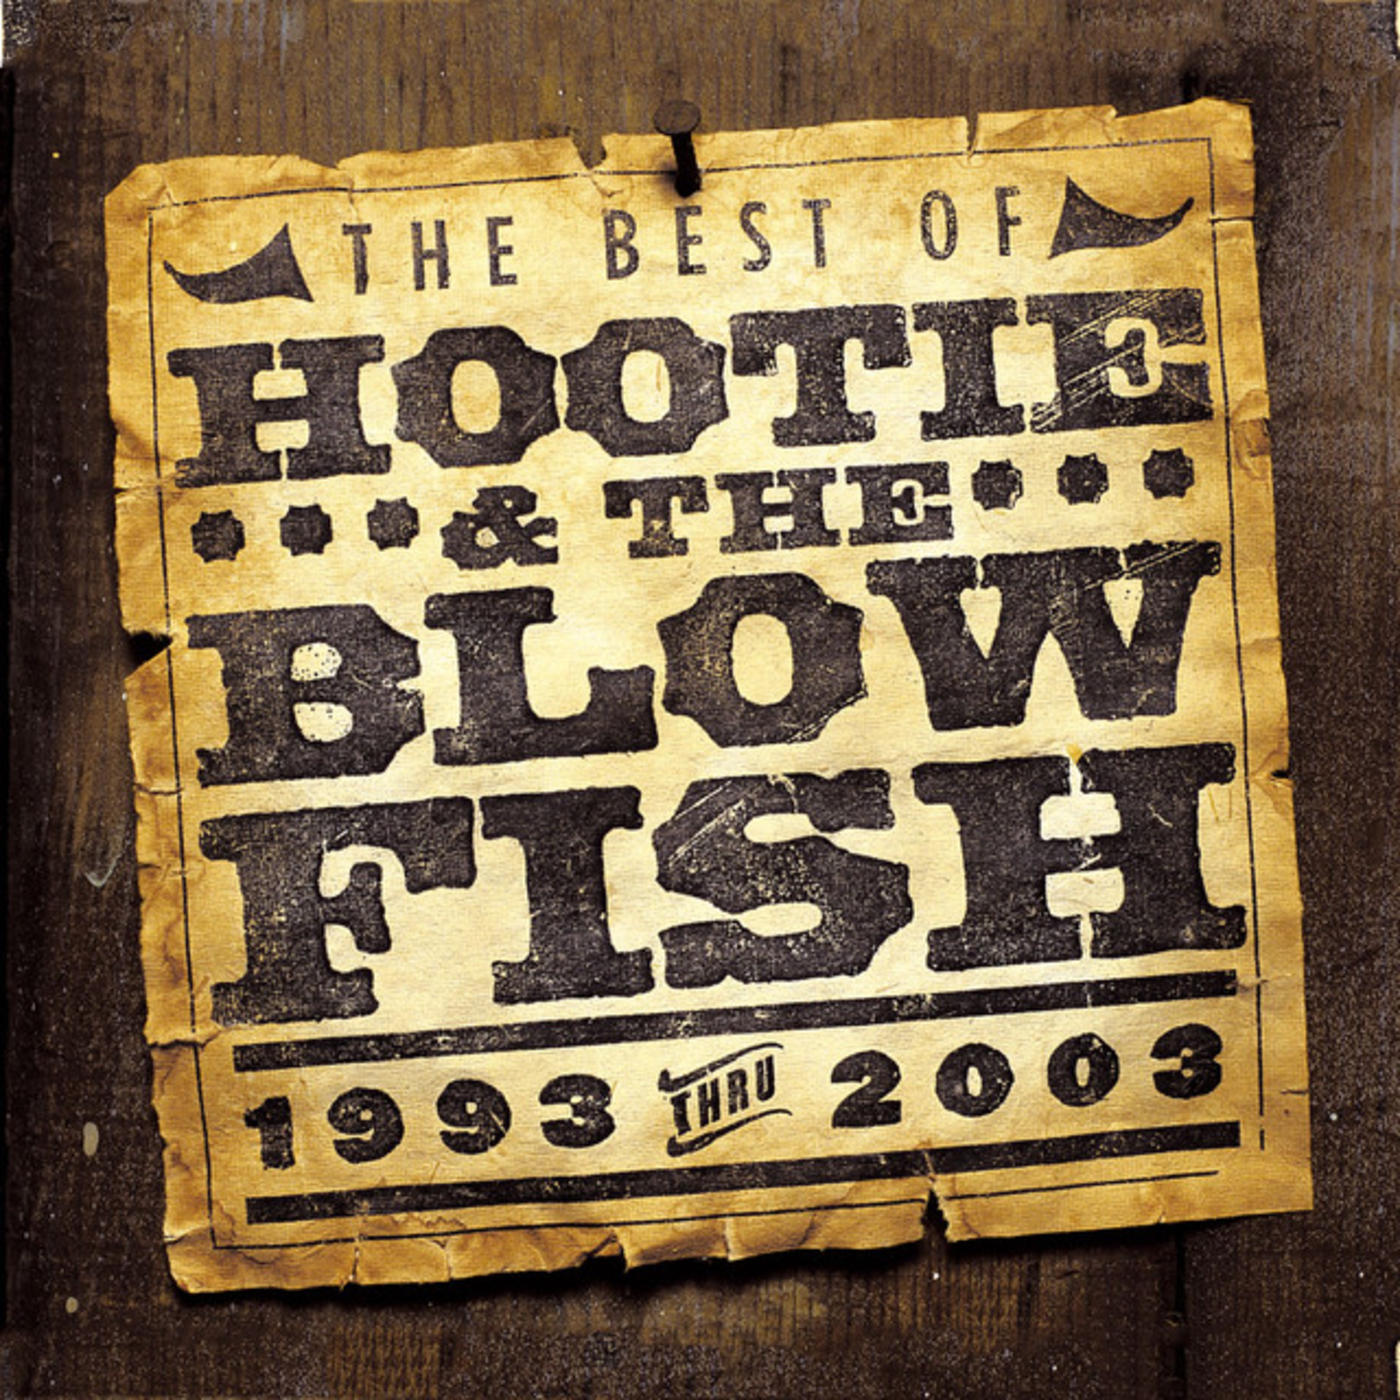 The Best of Hootie & The Blowfish (1993 - 2003) [US Release]